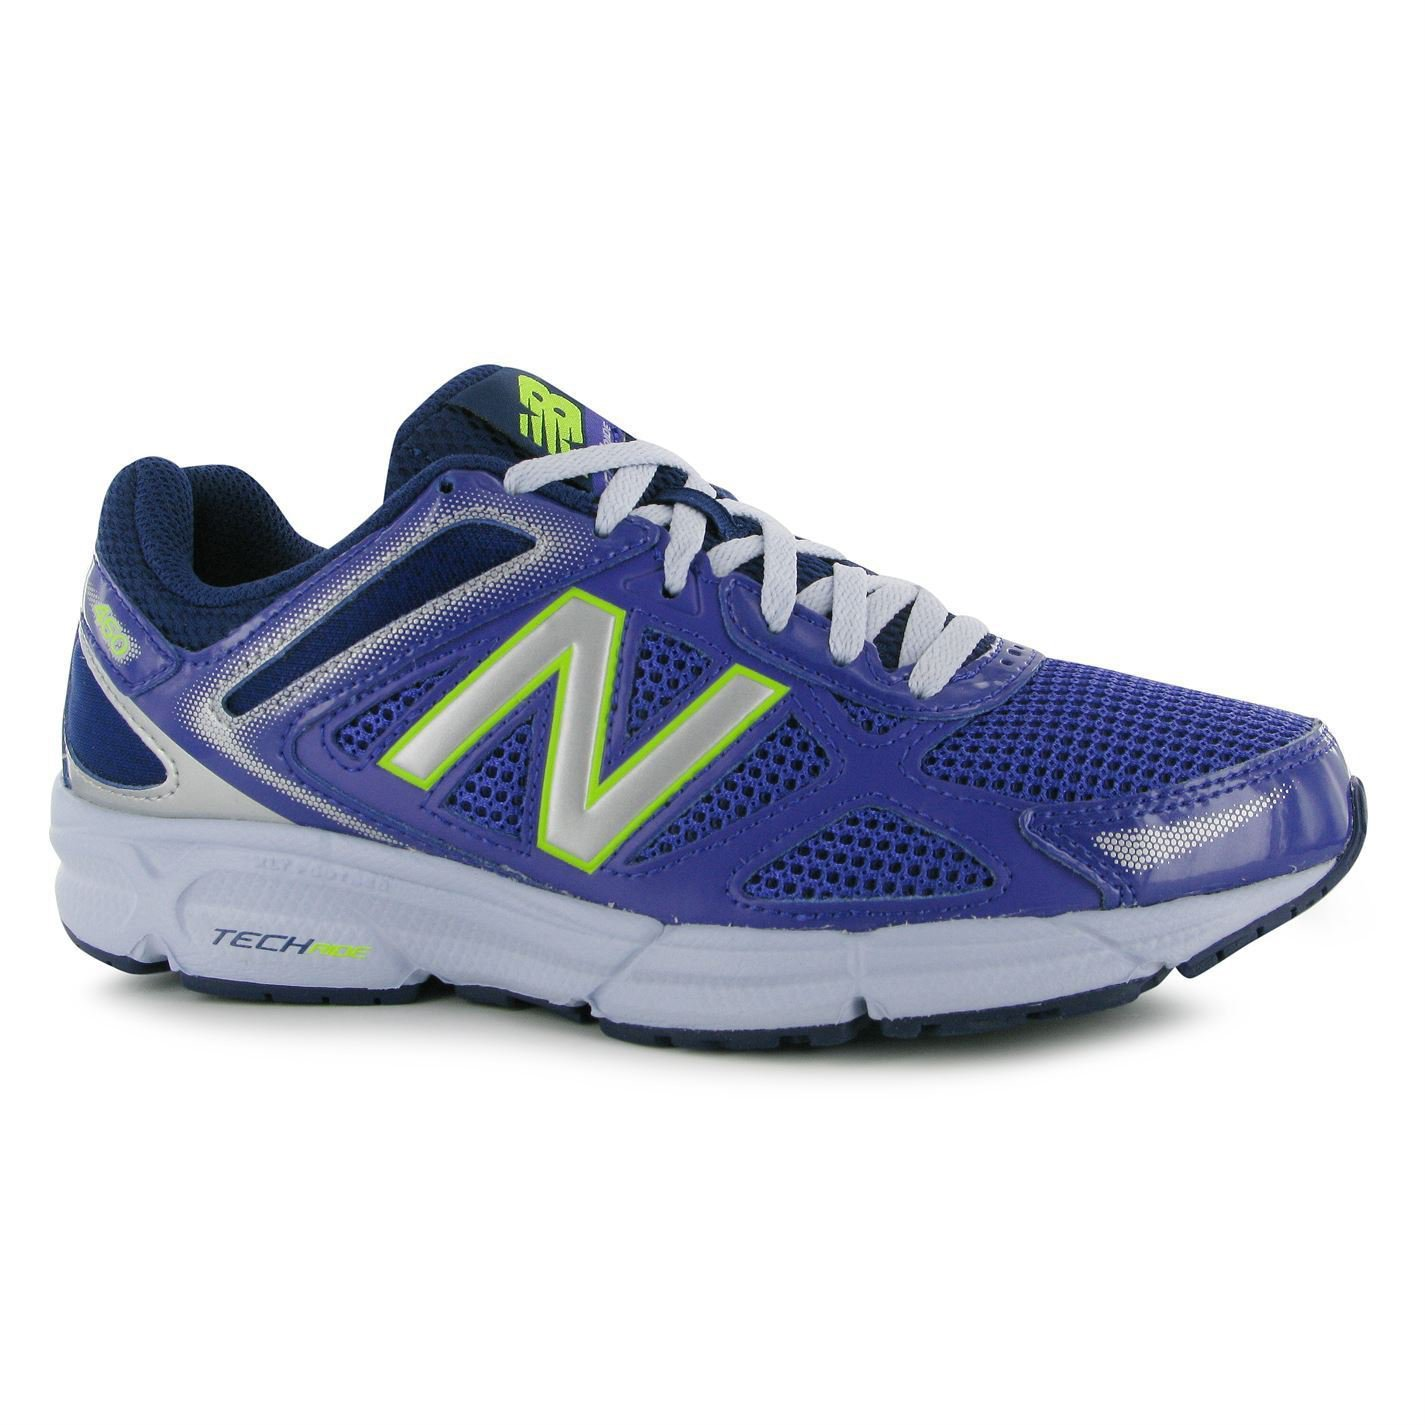 New Balance Womens Ladies W460v1 Running Shoes Lace Up Sports Trainers